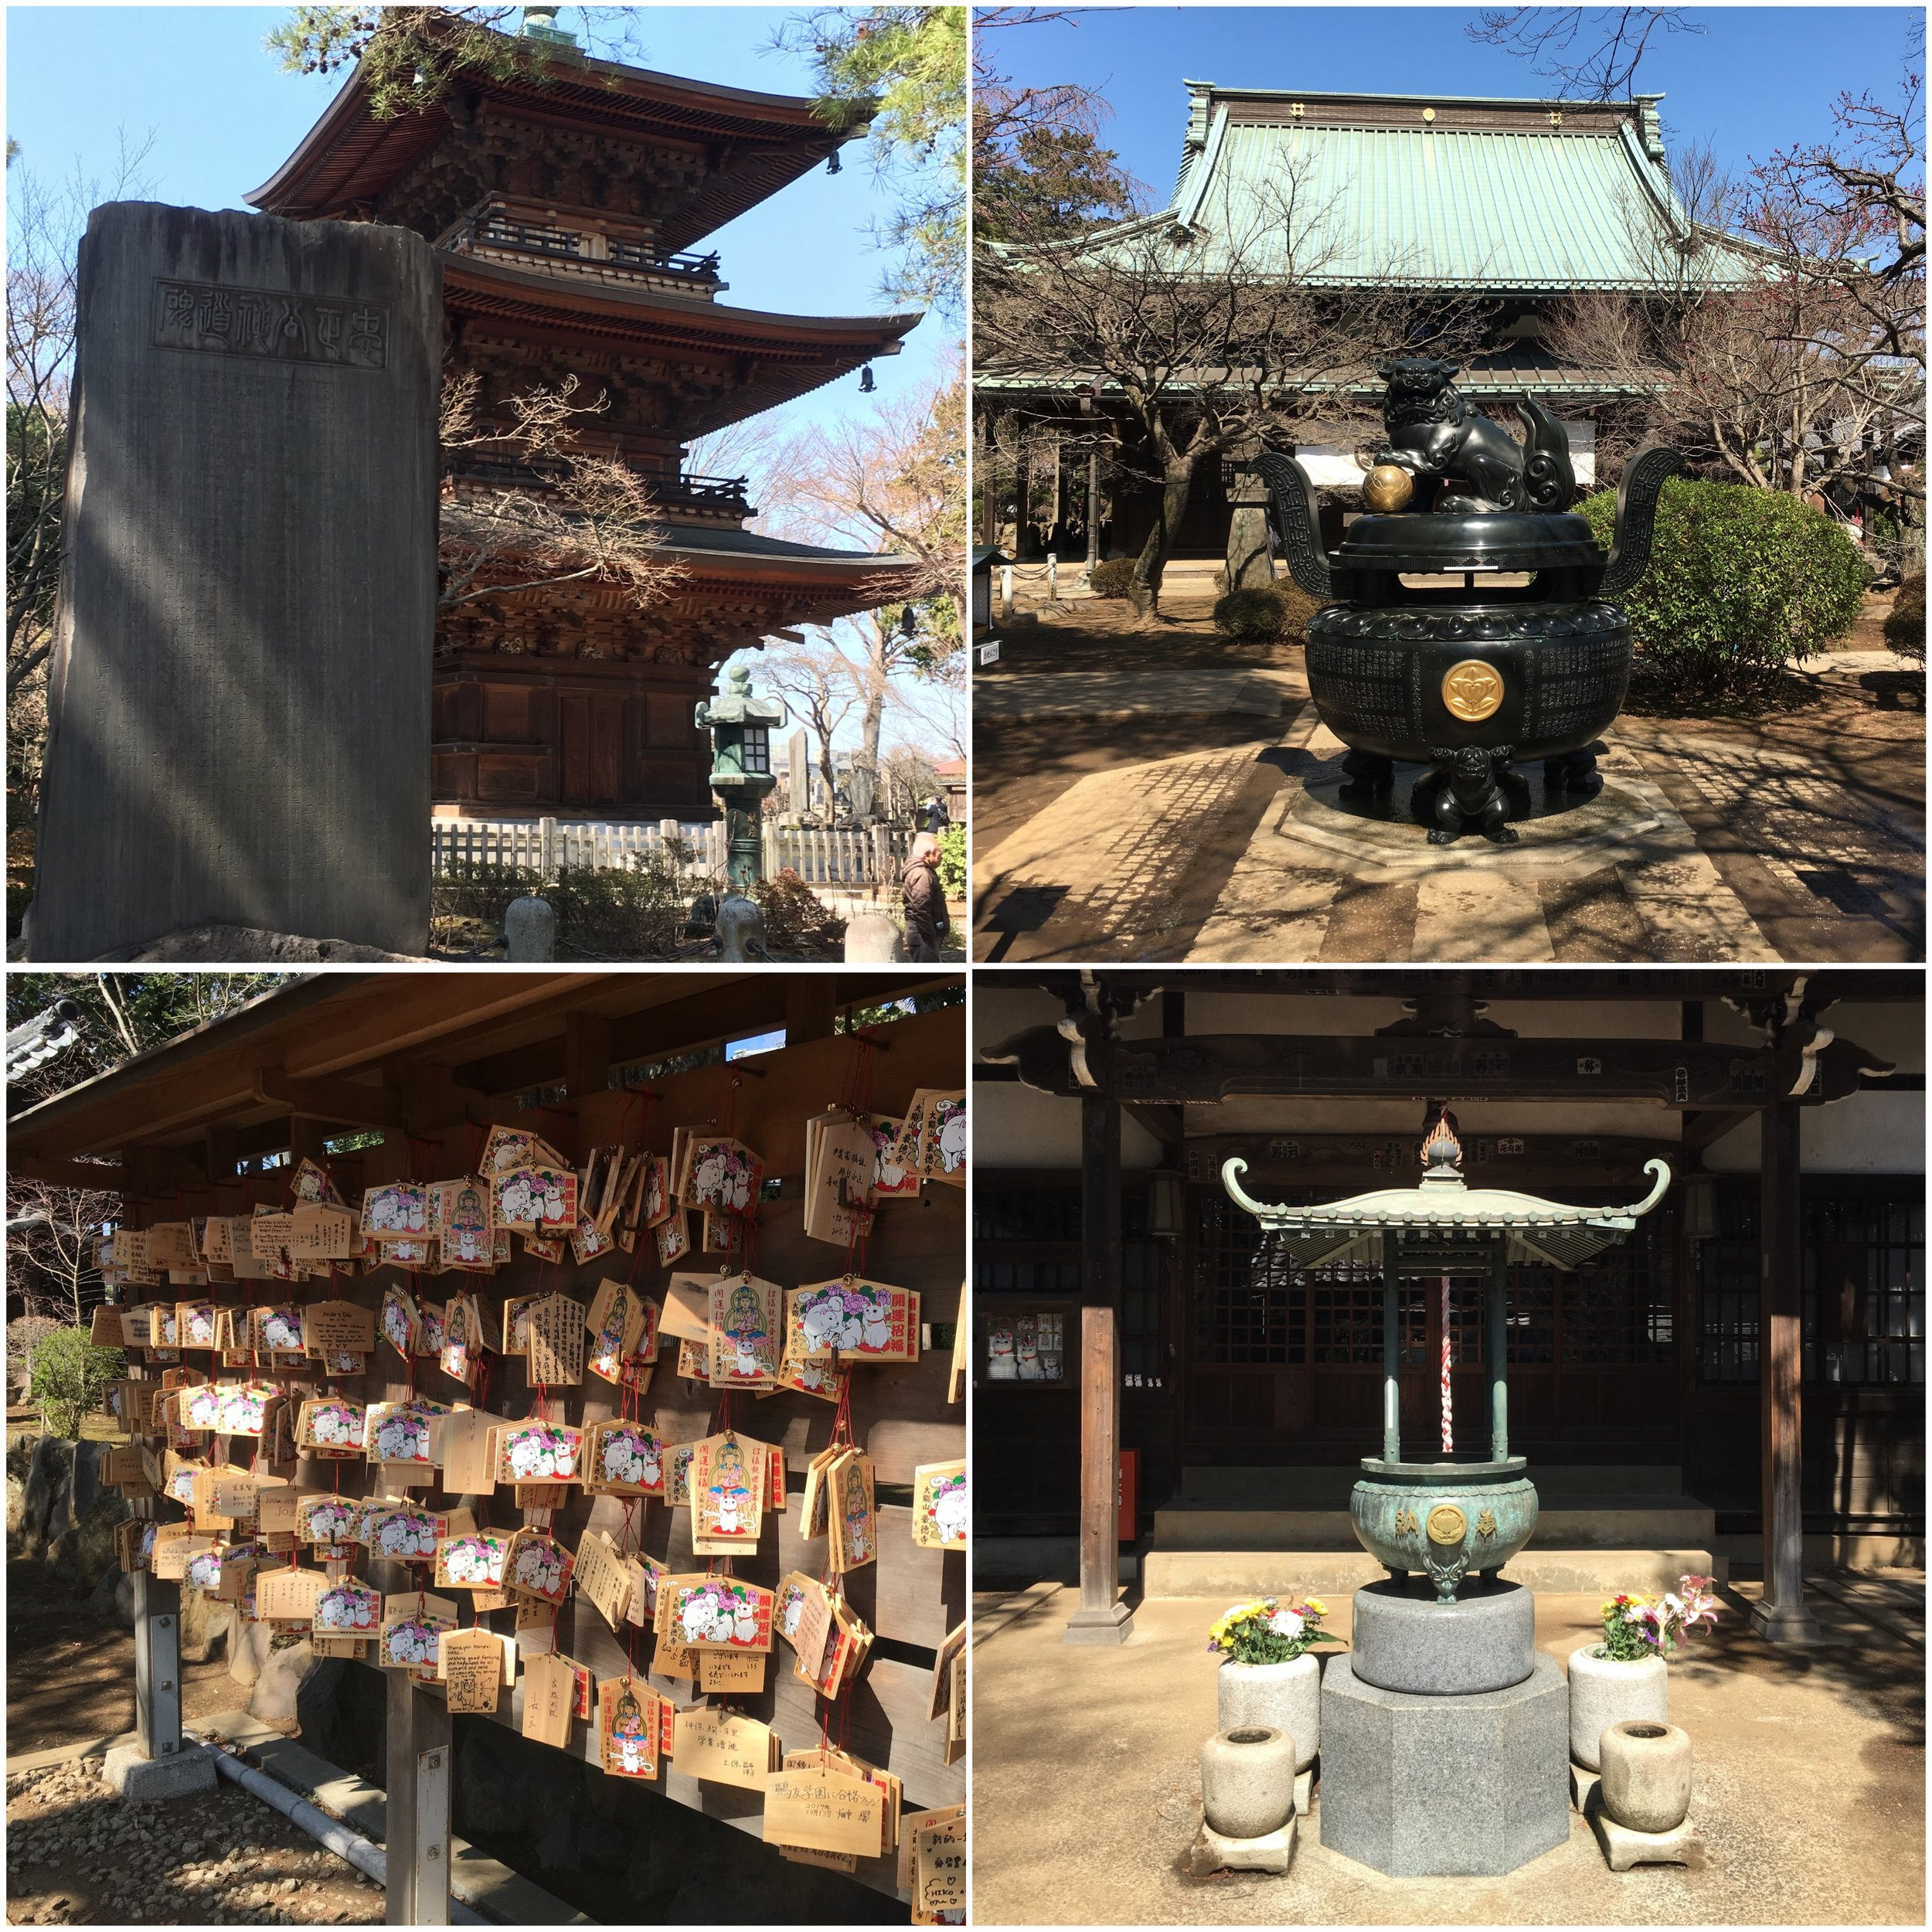 Around Gotoku-ji temple. The temple building for the cats is bottom right and even the prayer cards have cats drawn on them (bottom left).